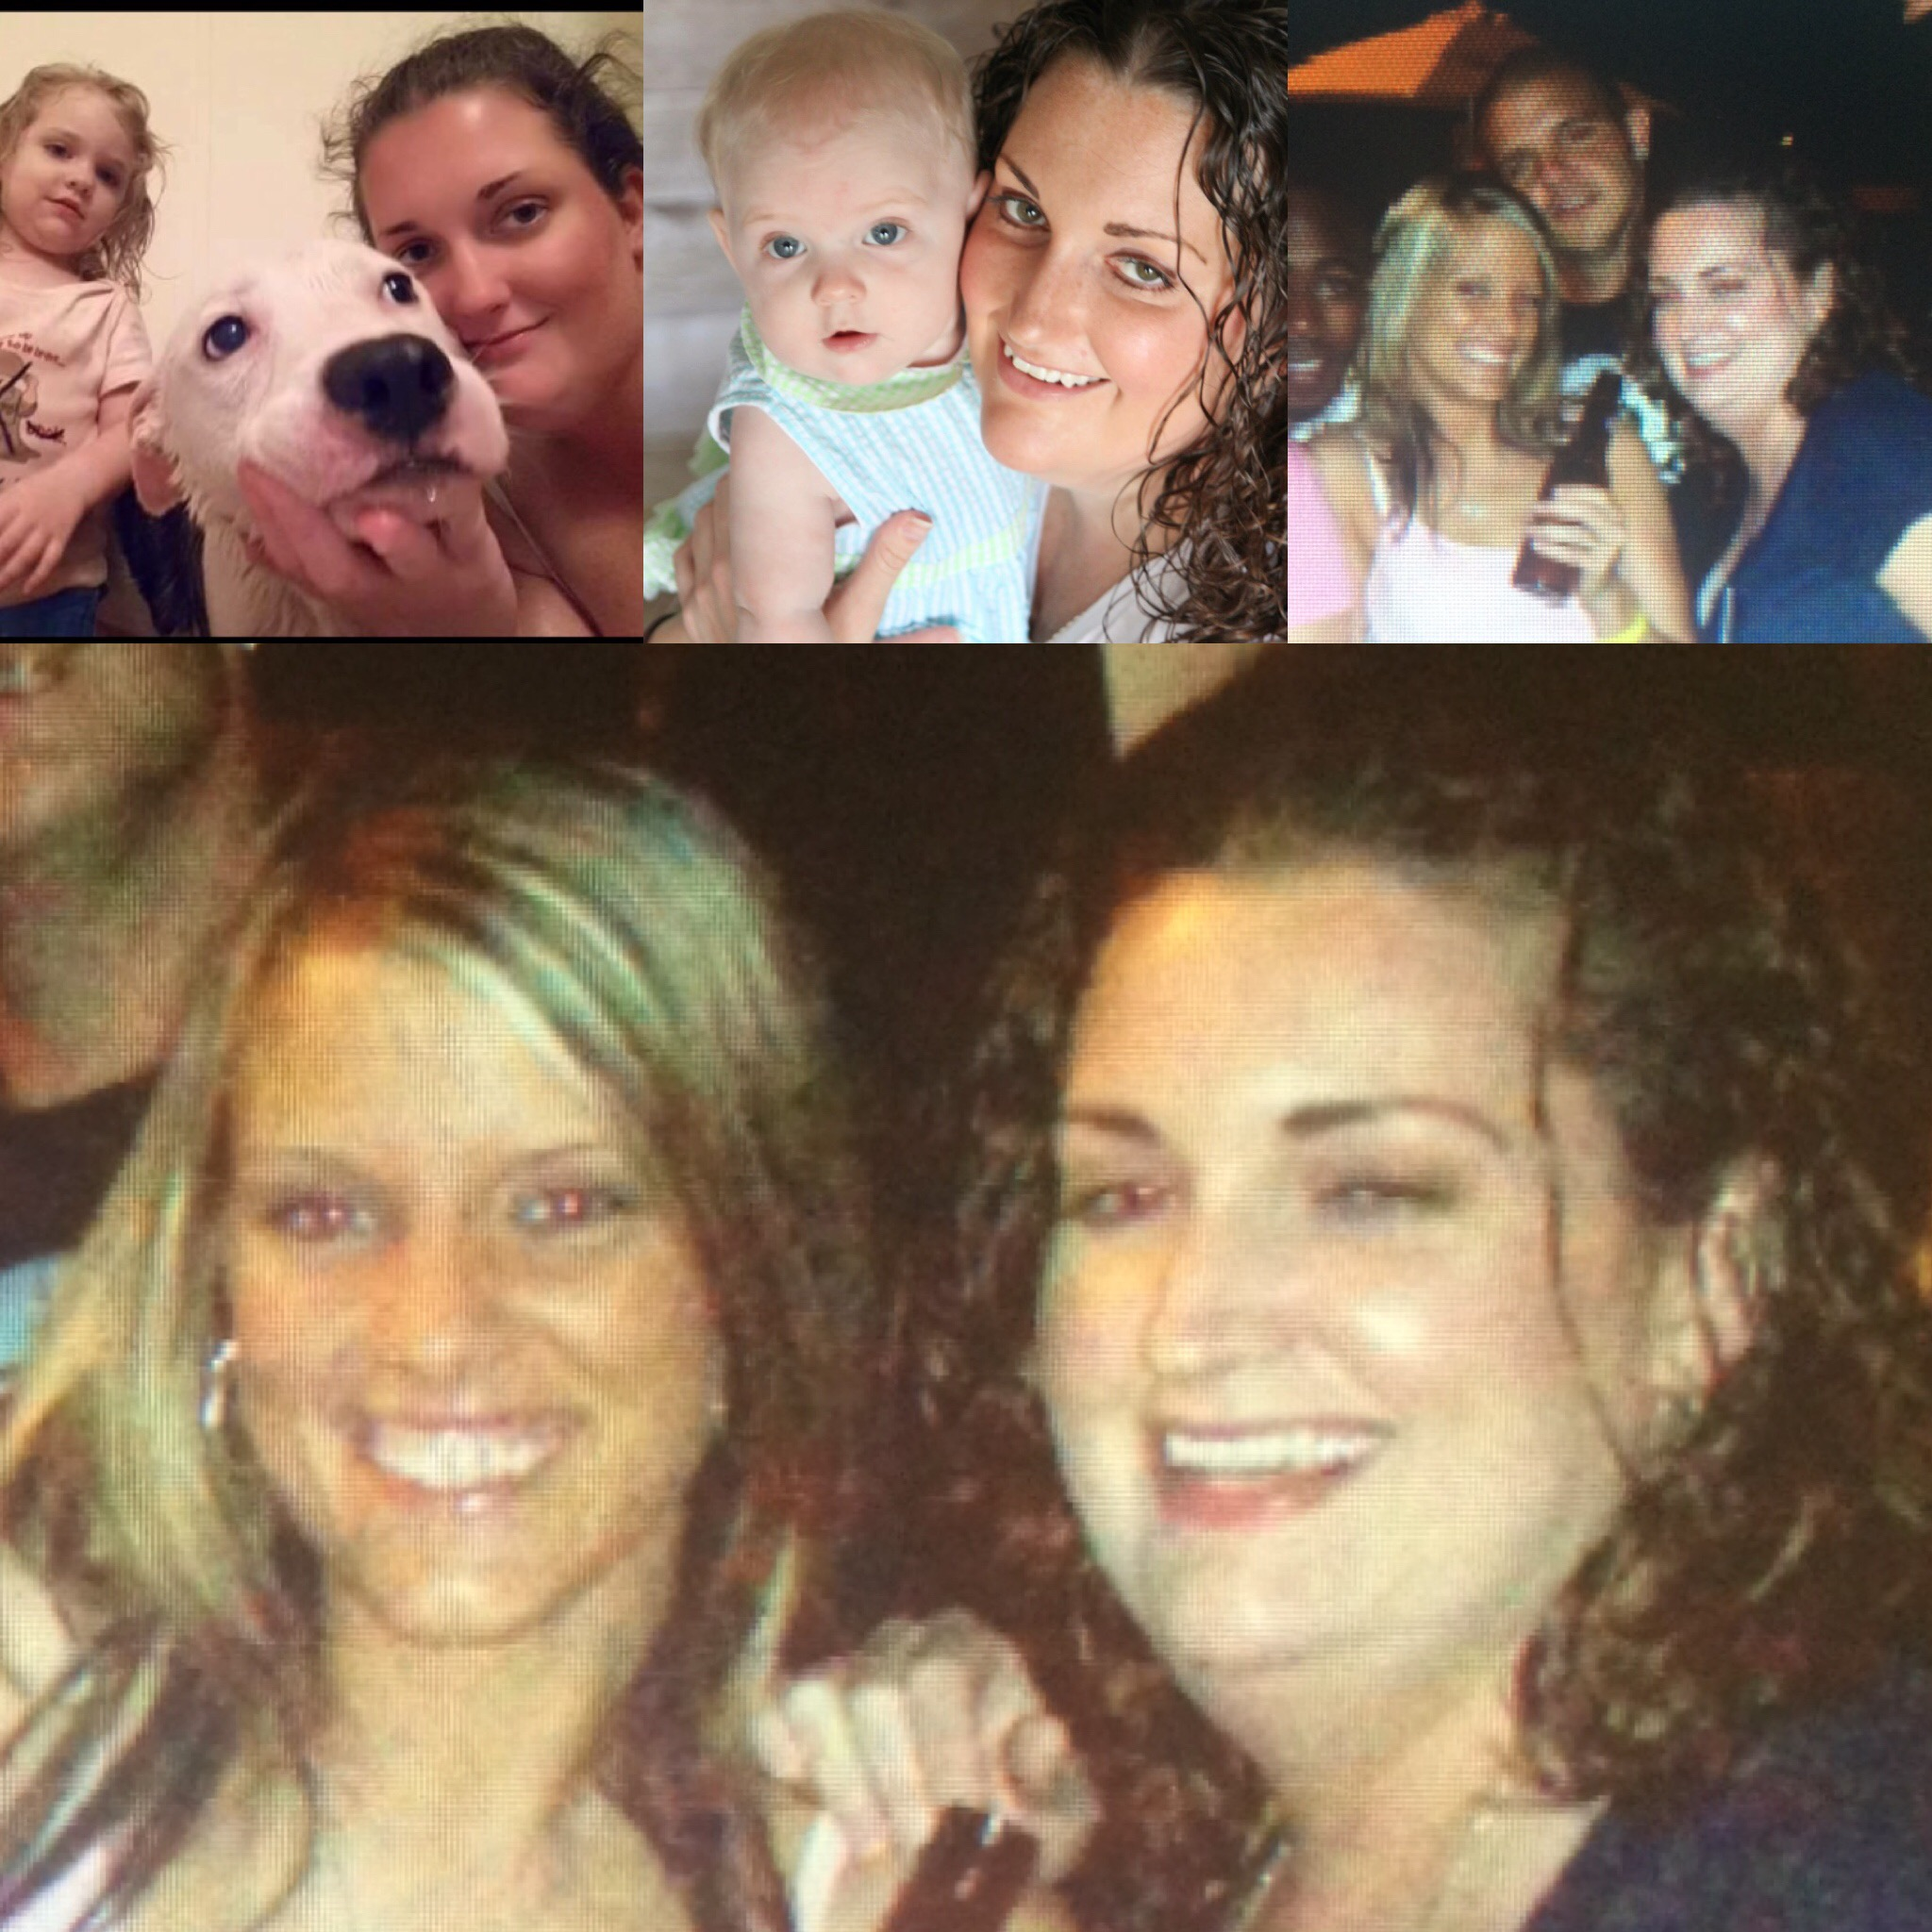 My lifelong childhood friend. I miss you I can't stand this. Why couldn't I just have been there that night? I love you so much I promise on everything I will do whatever to make sure McKenzie knows what a great person you were and how much you loved her. It may be hard to explain now and hard due to circumstances however the girls and I will make sure she knows! I will also let her know when she gets older to call me anytime for anything. I love you can't wait until I see you again. Save me a seat!